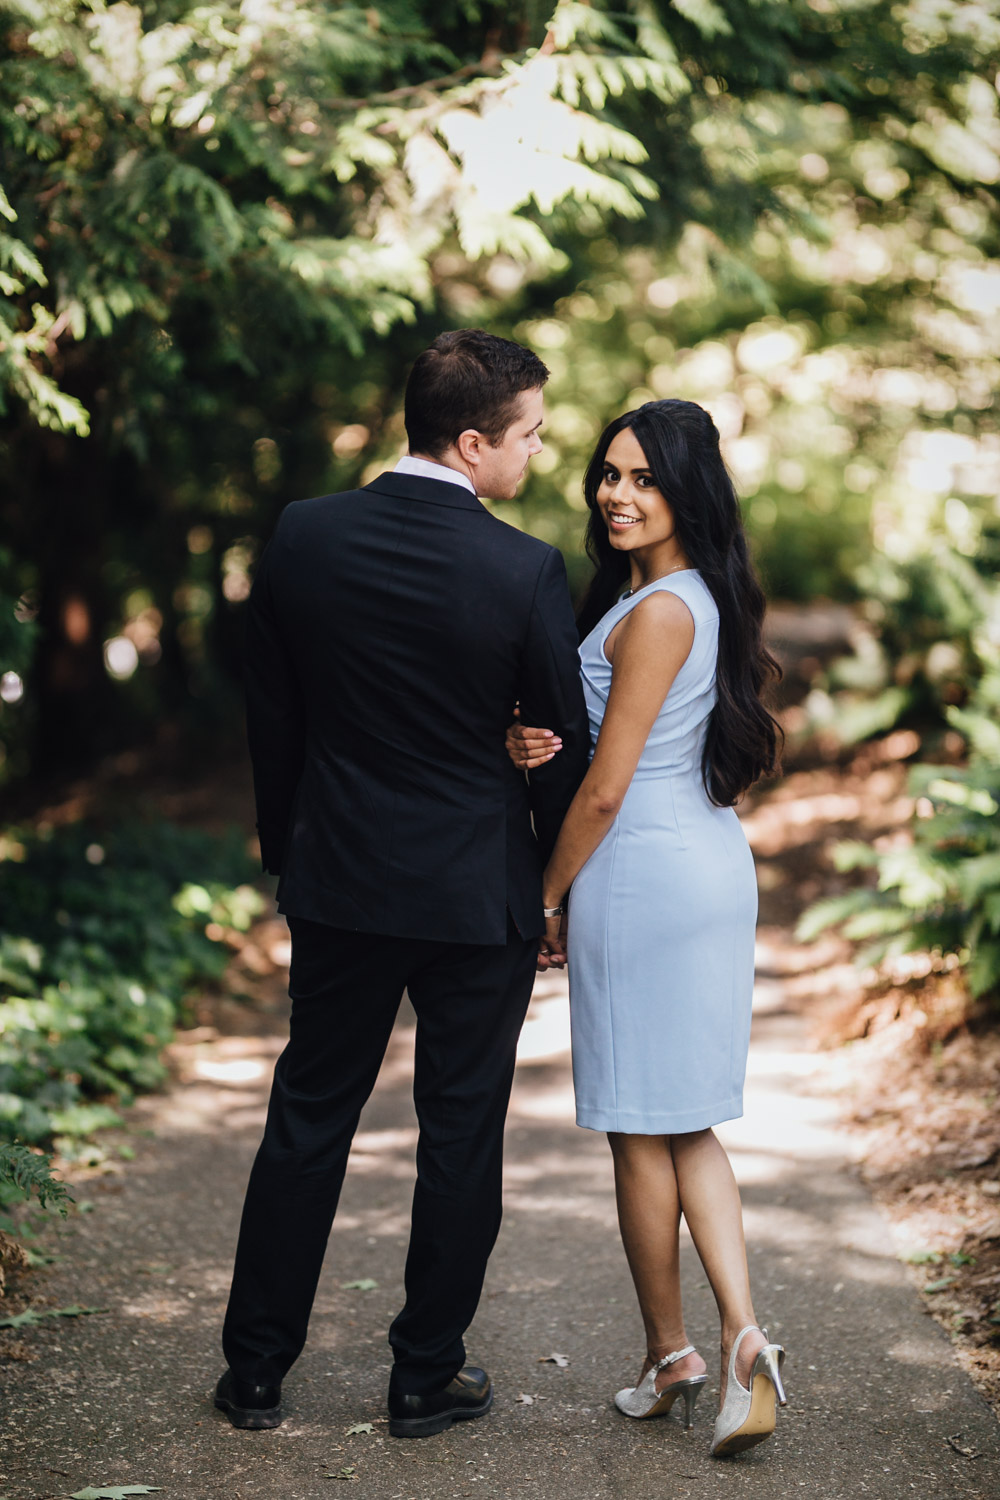 queen elizabeth park engagement session in summer photography